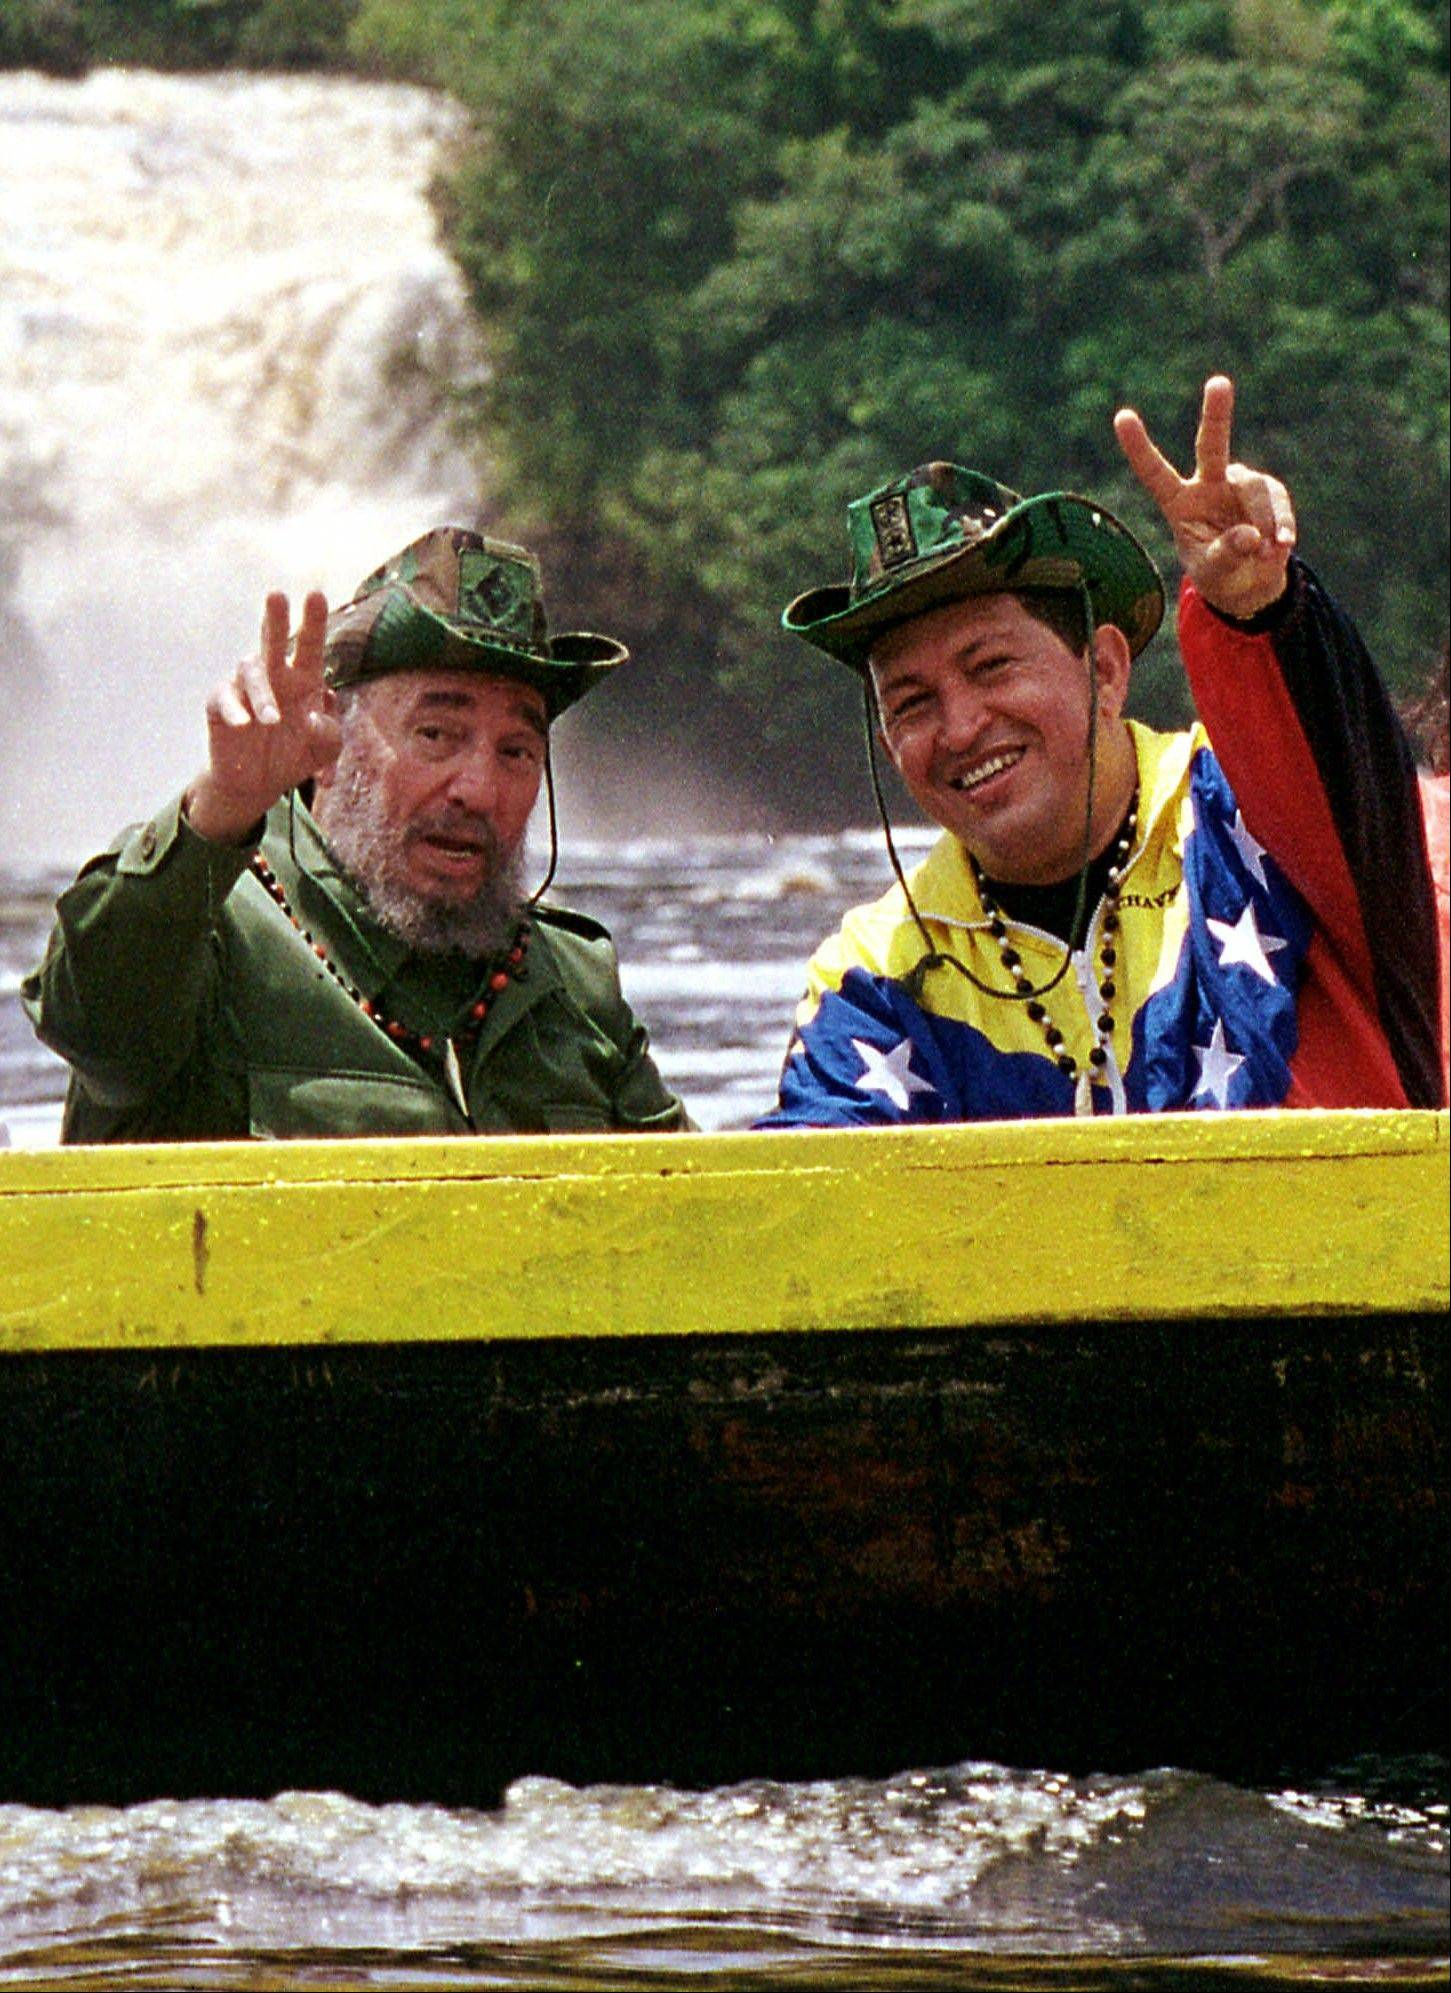 In this Aug. 12, 2001 file photo released by Miraflores Press Office, Cuba's President Fidel Castro, left, and Venezuela's President Hugo Chavez wave to a crowd while touring Canaima National Park in eastern Venezuela in a canoe.